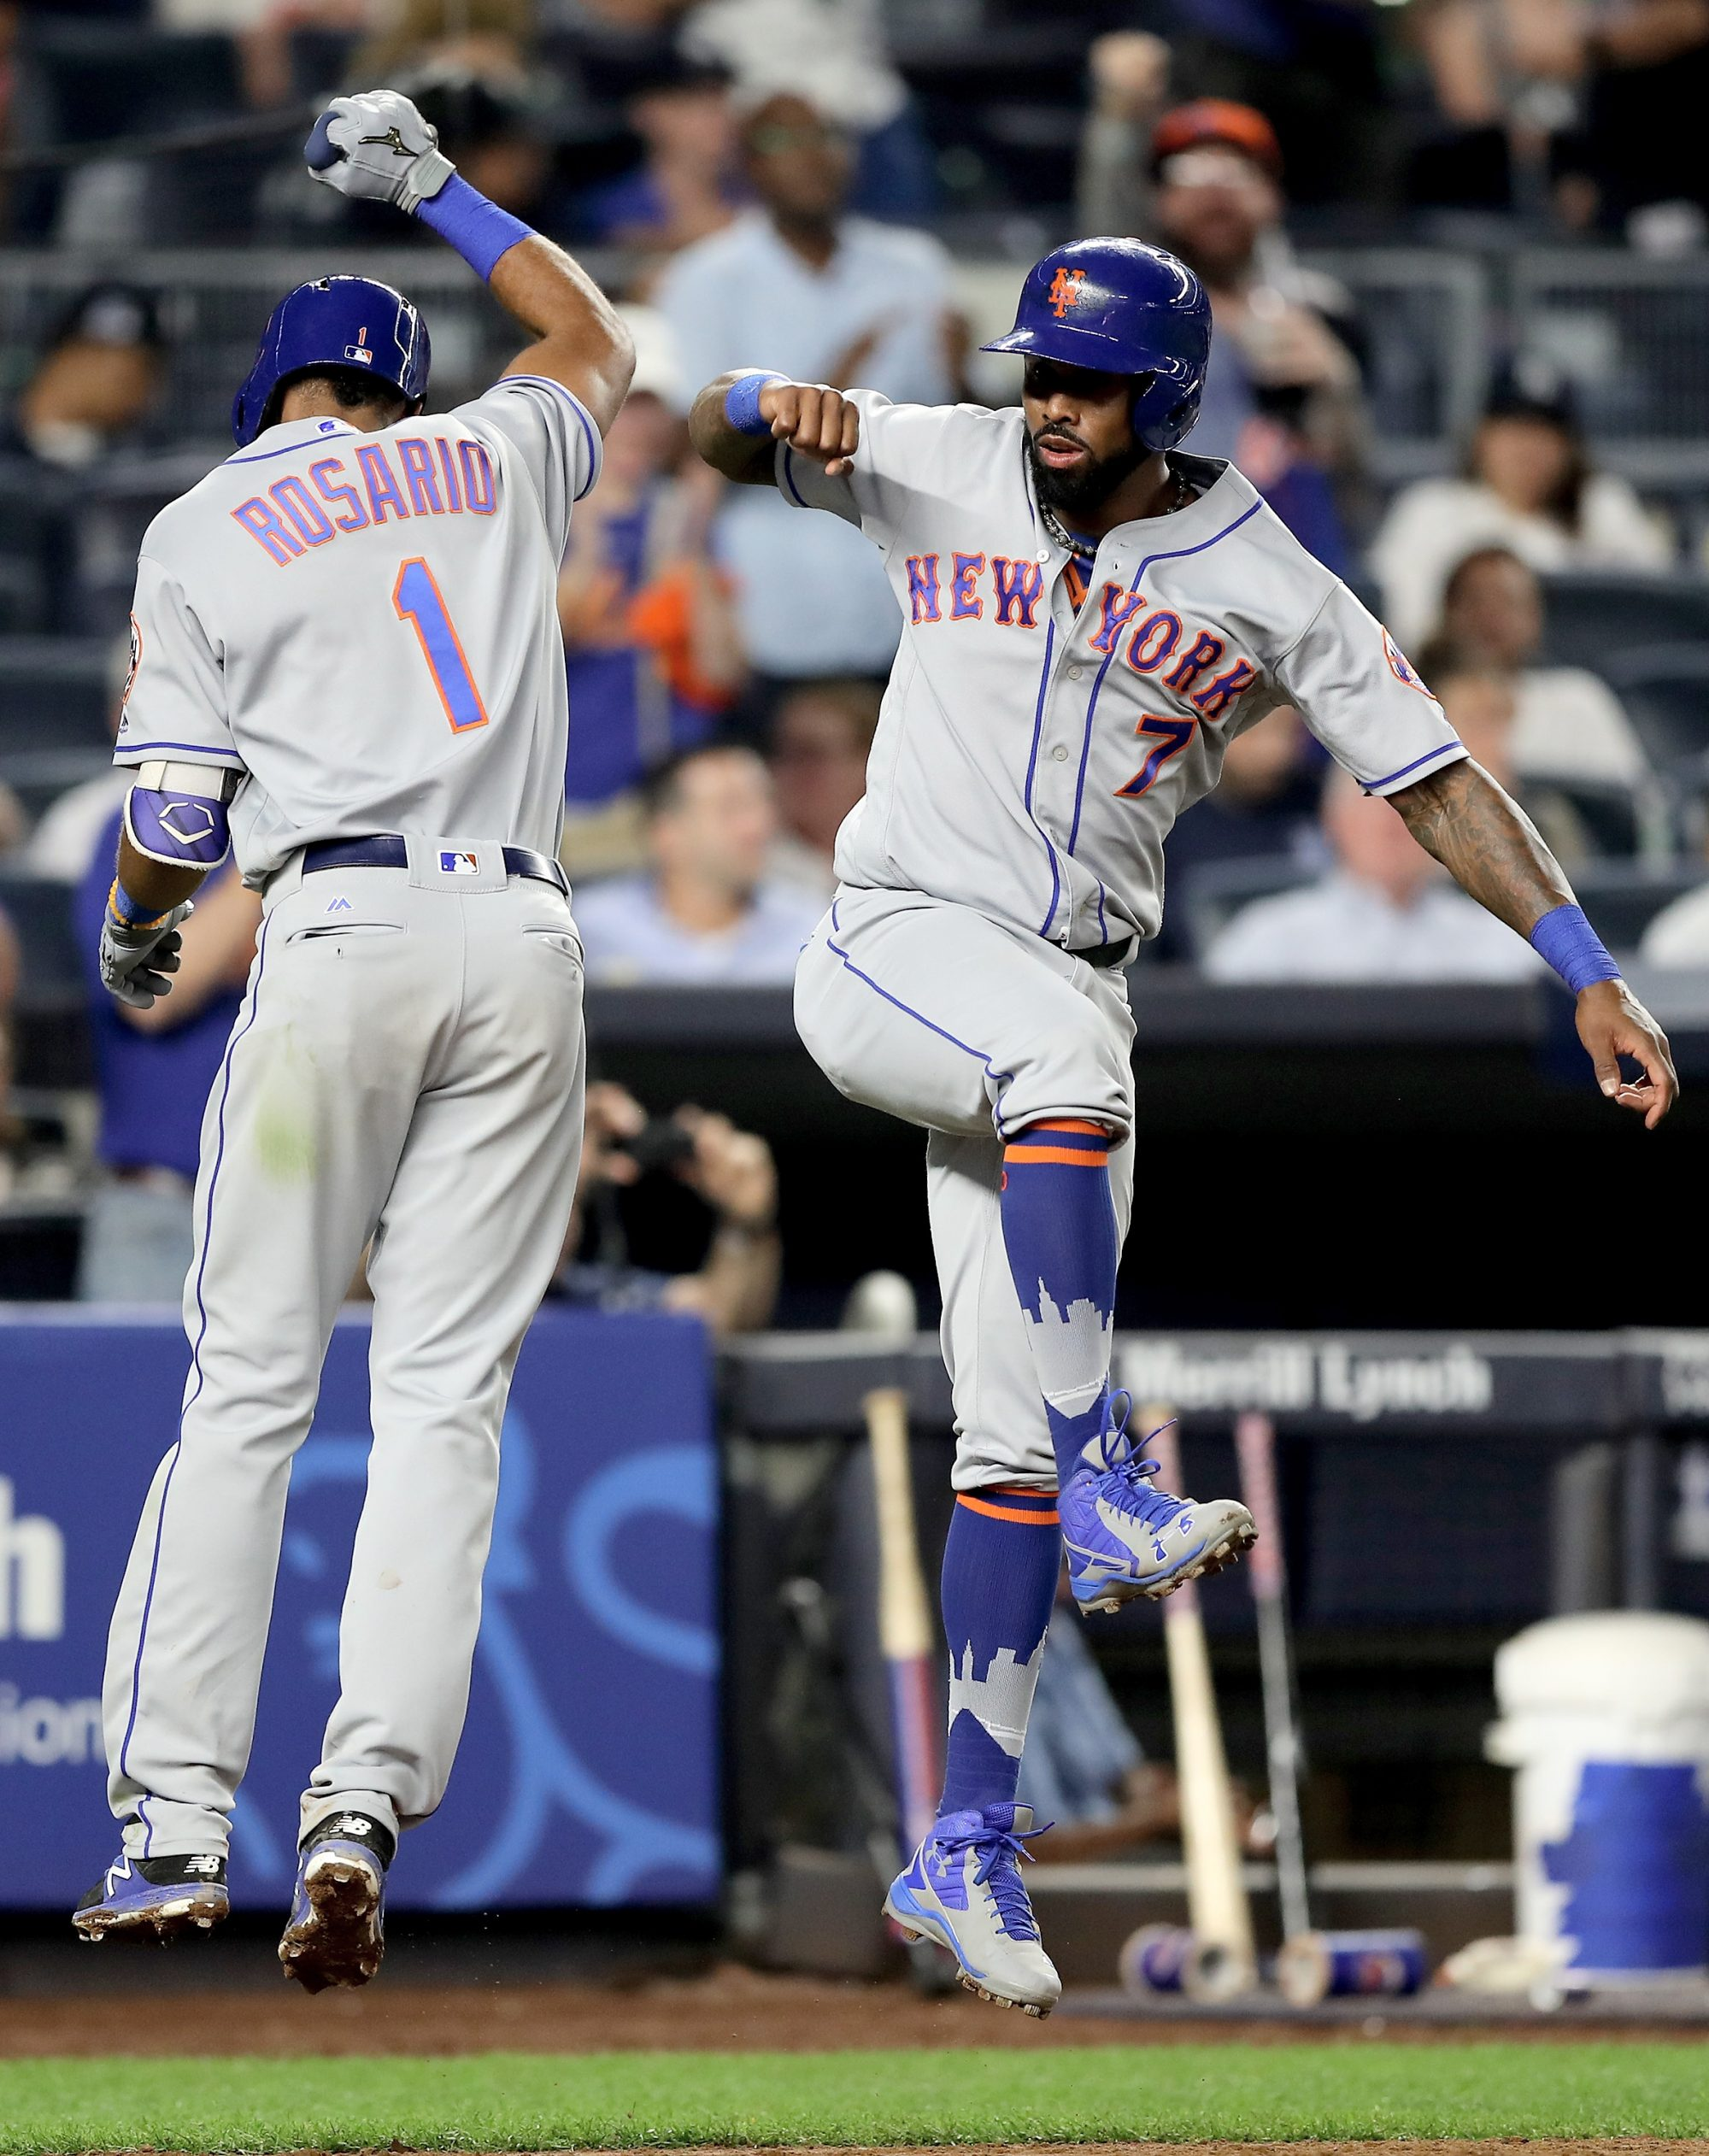 New York Mets: Jose Reyes Goes On 10-Day Disabled List